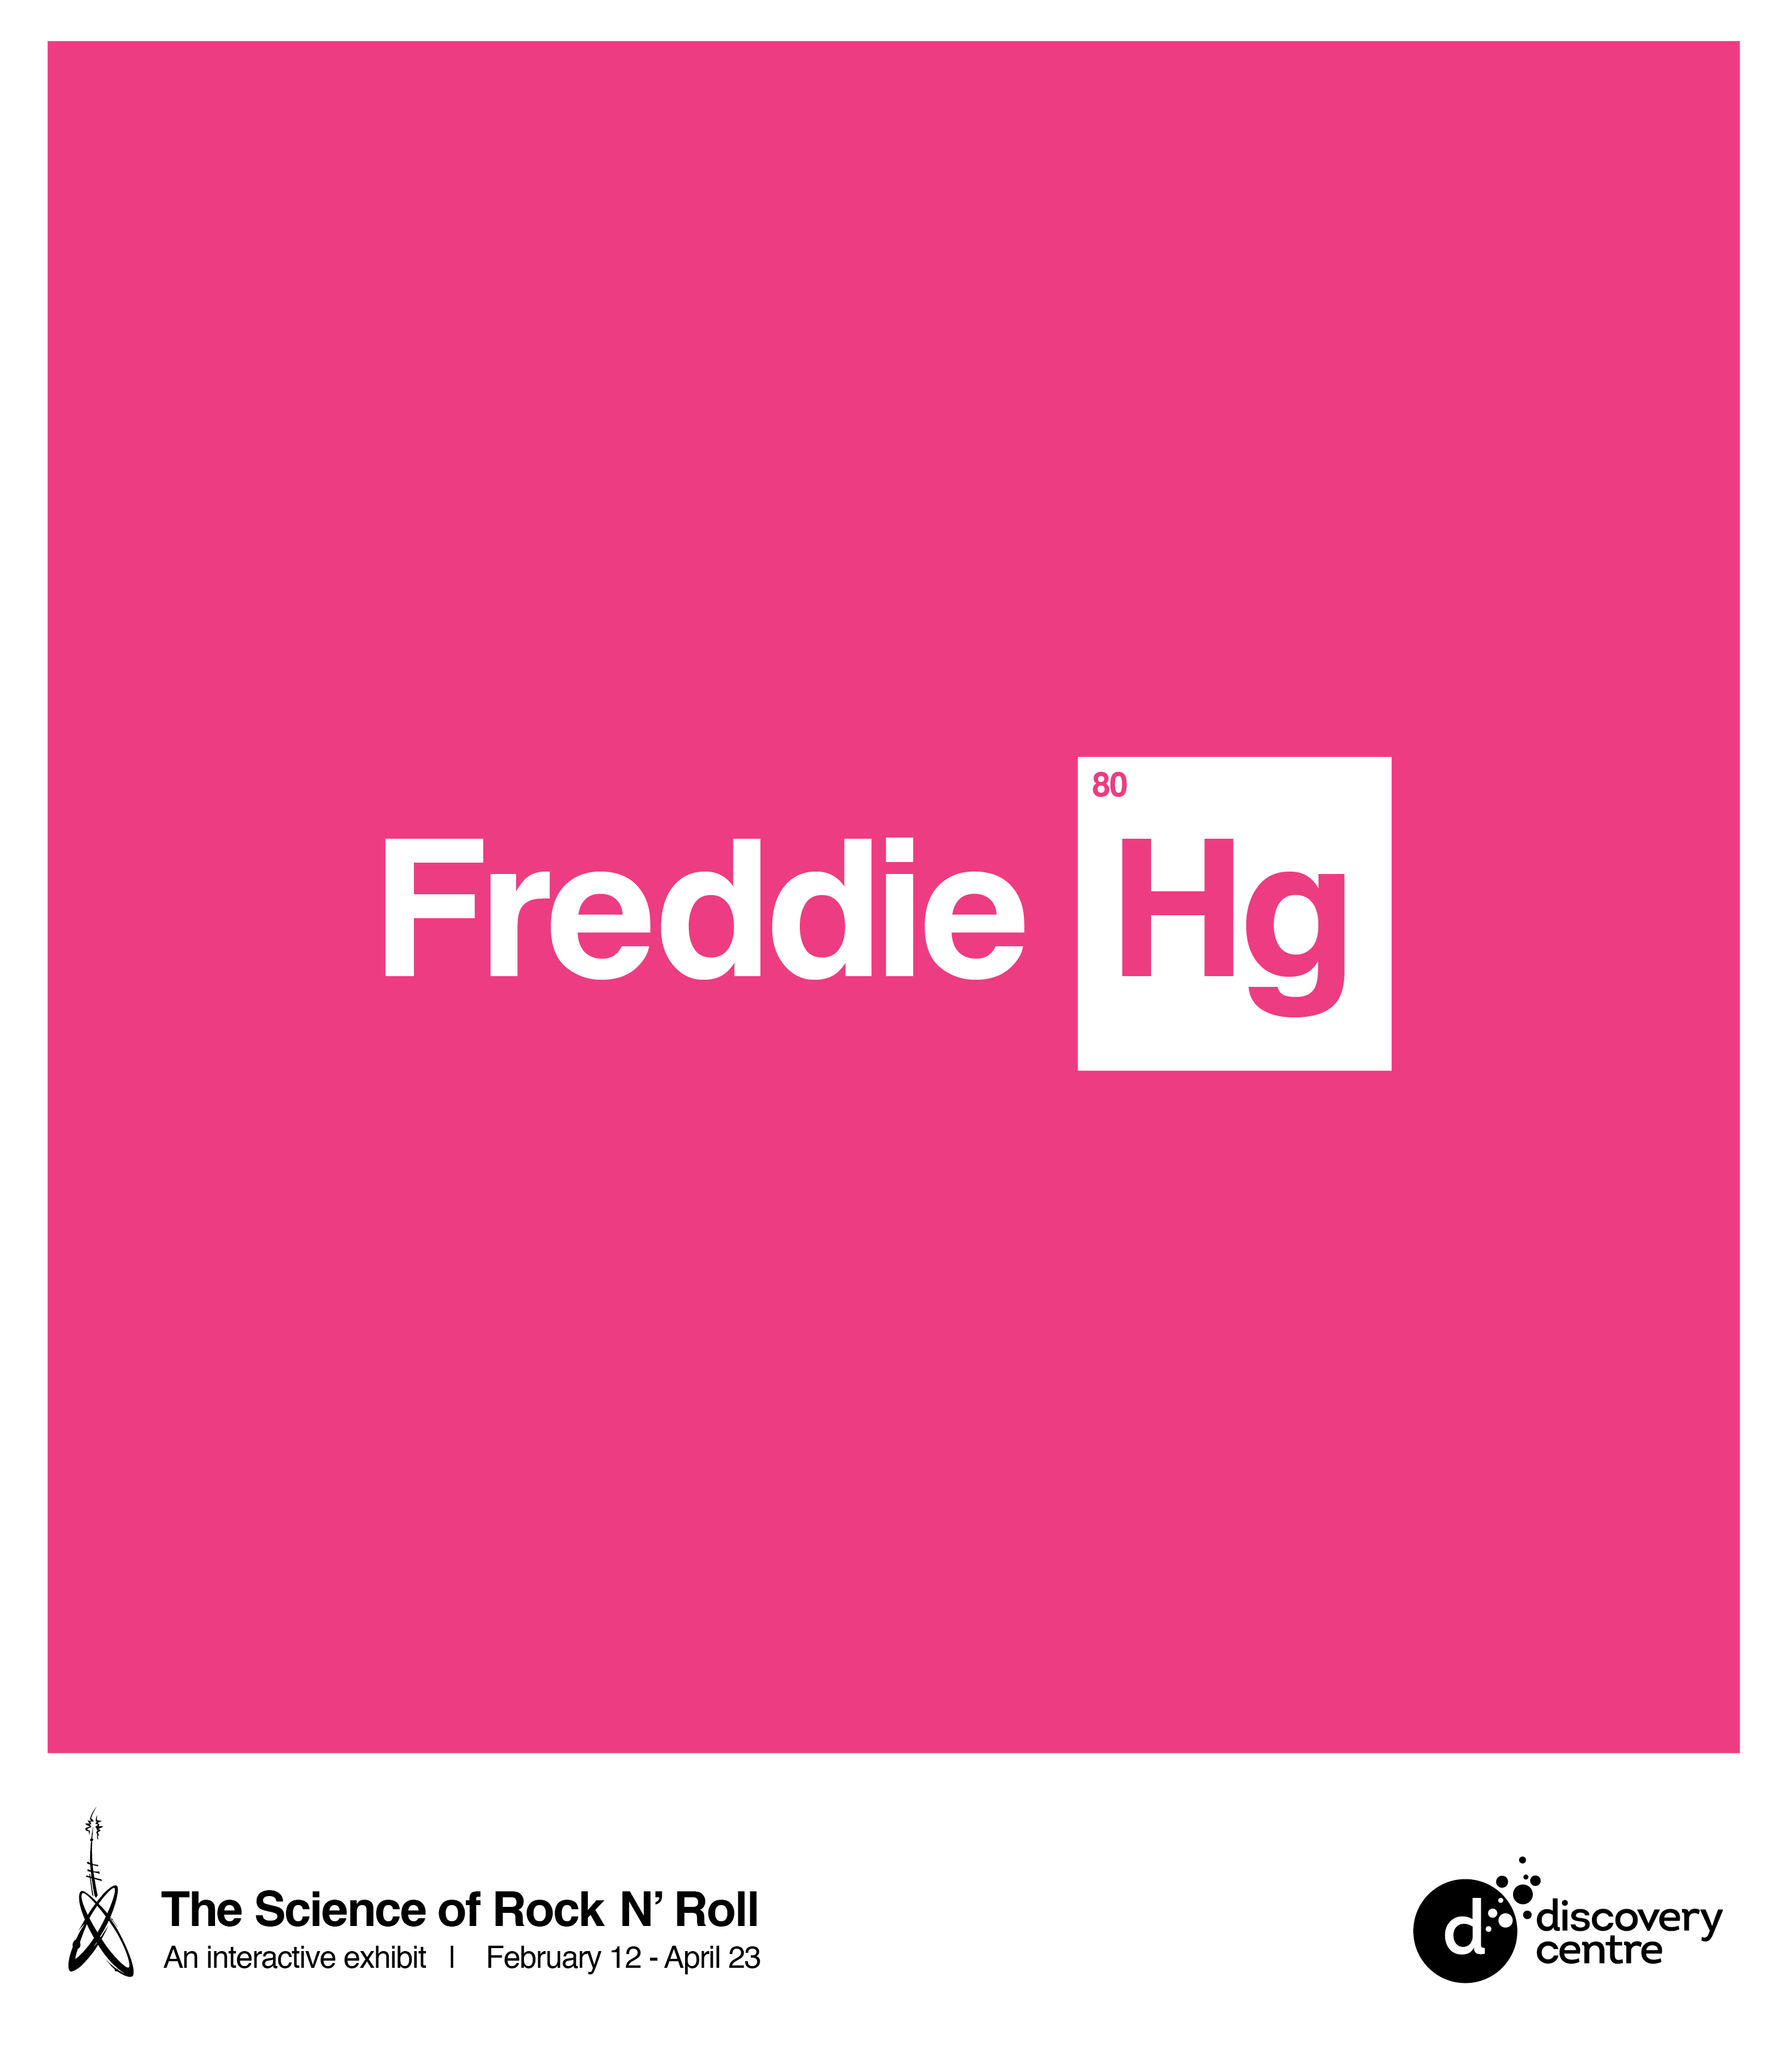 Marketing awards 2017 winners famous bandmusician names for their elemental abbreviations found on the periodic table iron maiden became fe maiden while freddie mercury became urtaz Image collections